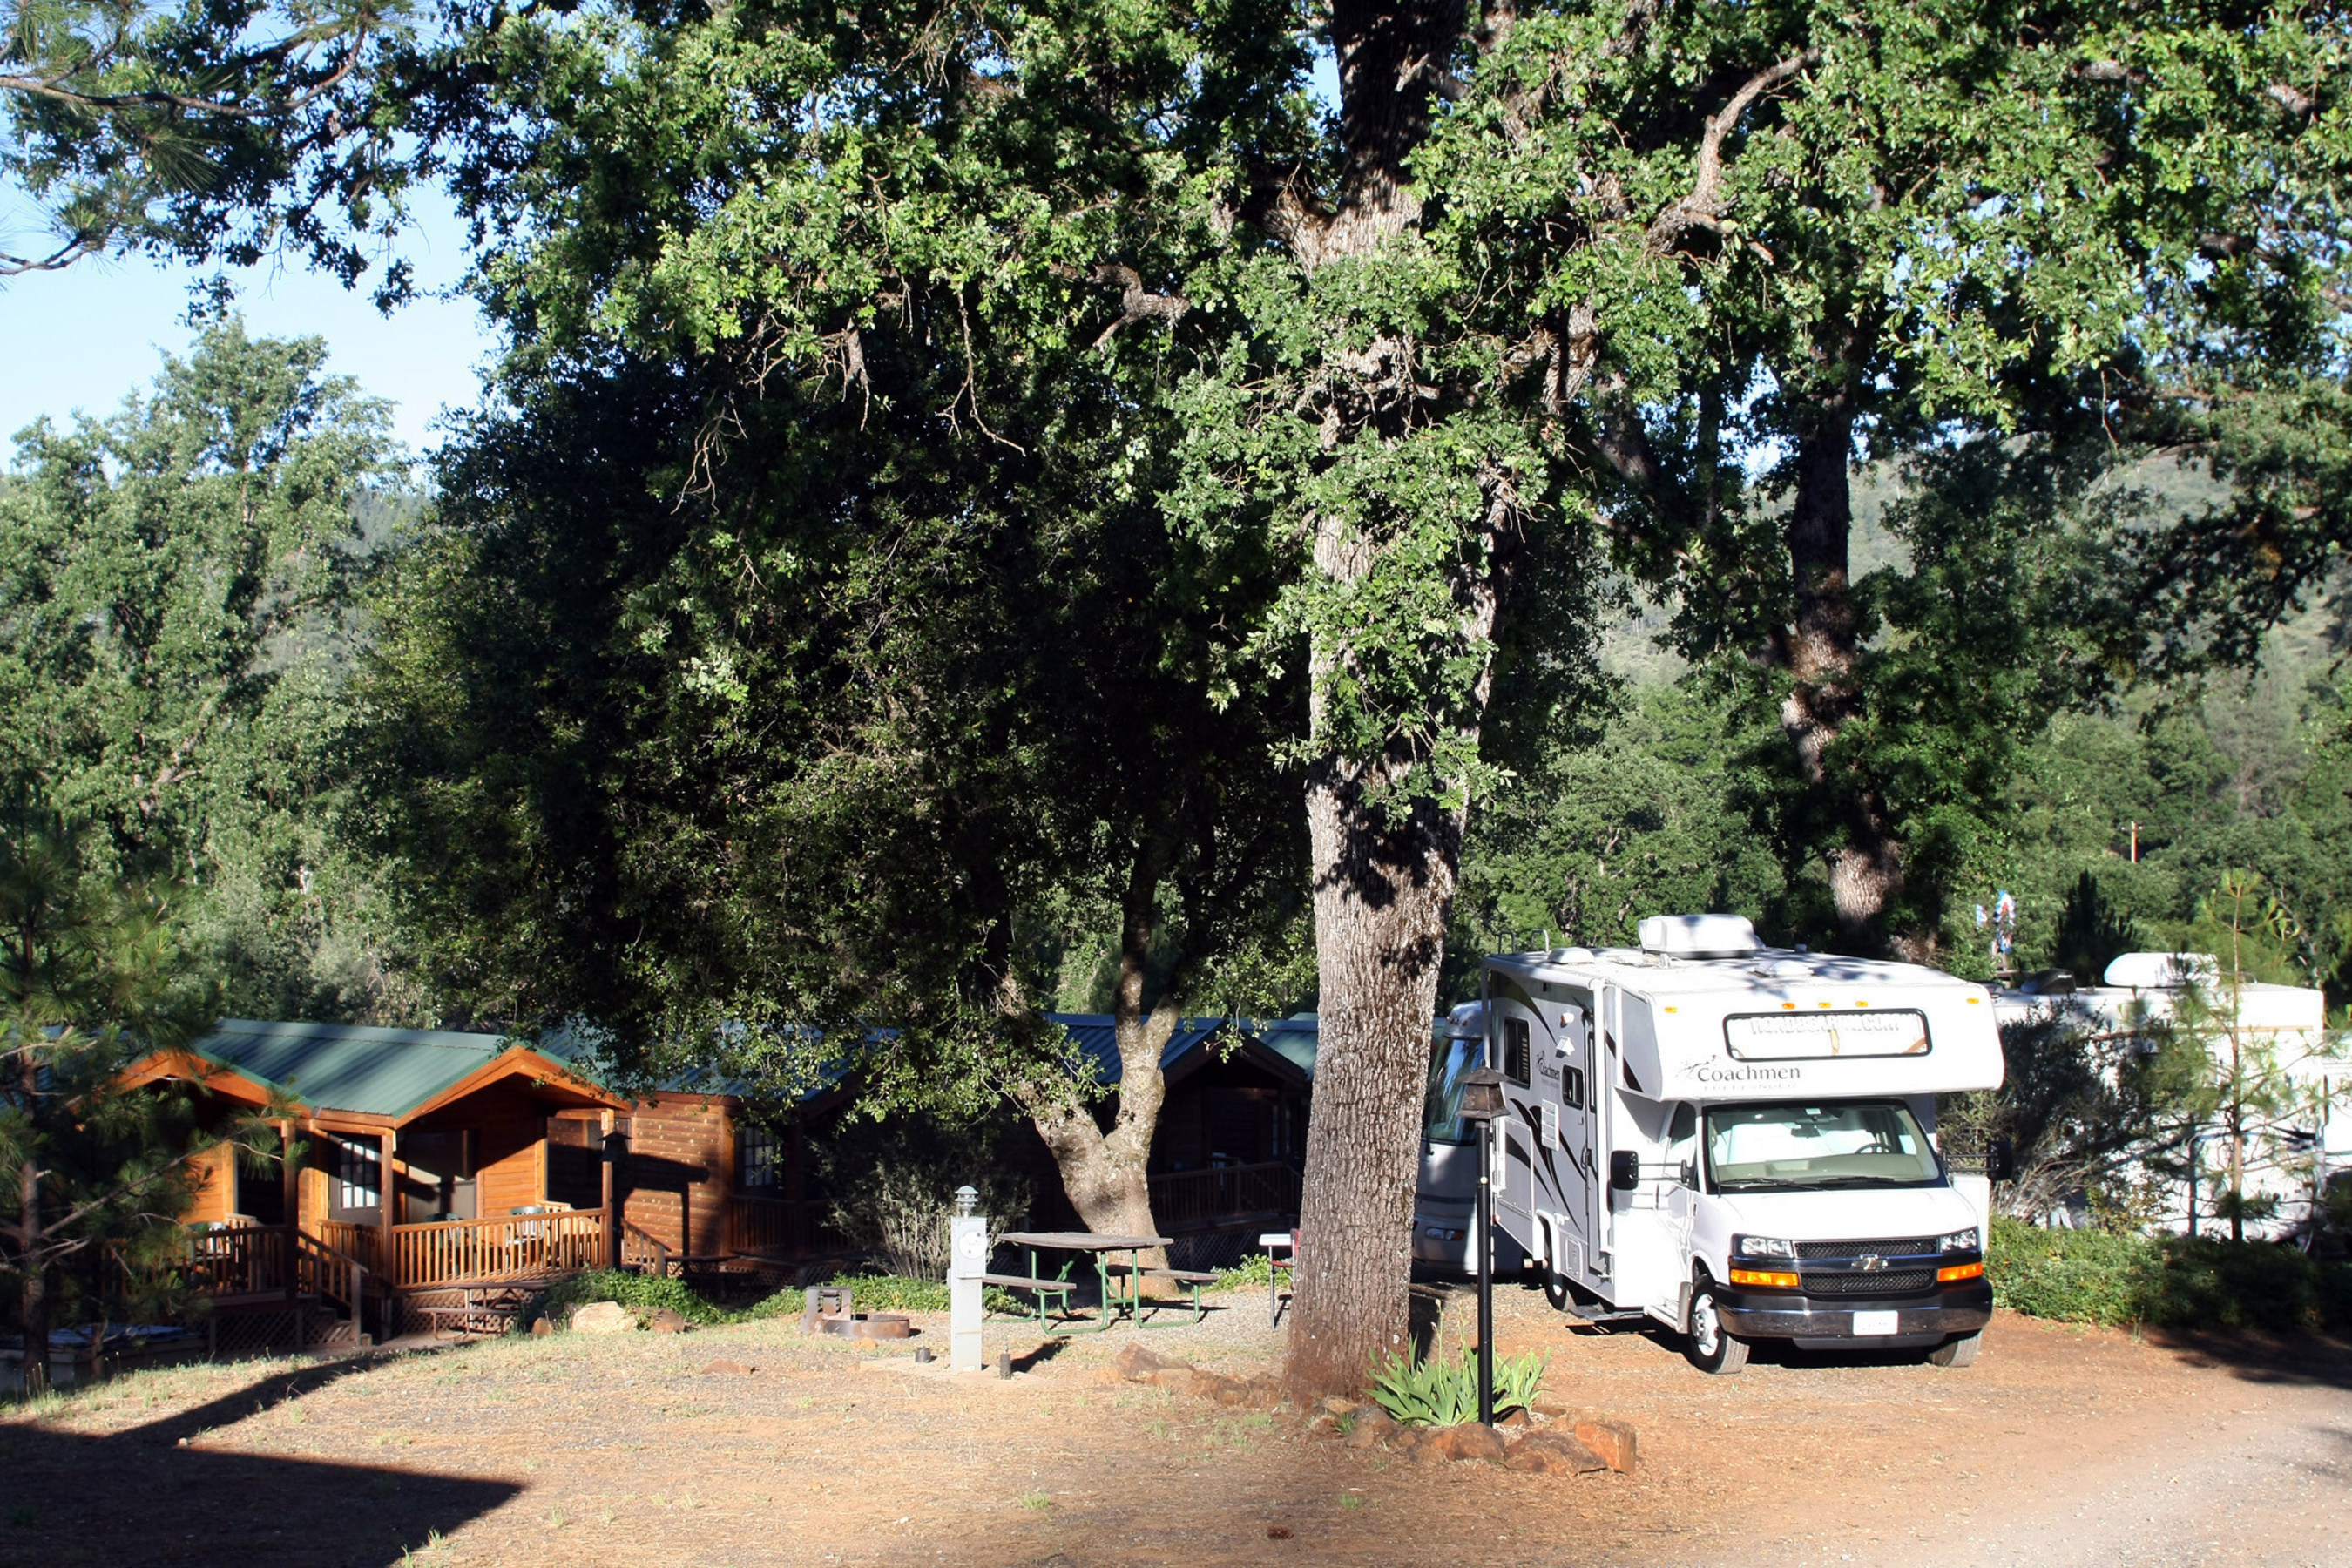 Shady RV and Tent sites or Cabins in the forest increased the demand for more lodging options. (PRNewsFoto/Yosemite Pines RV Resort...)